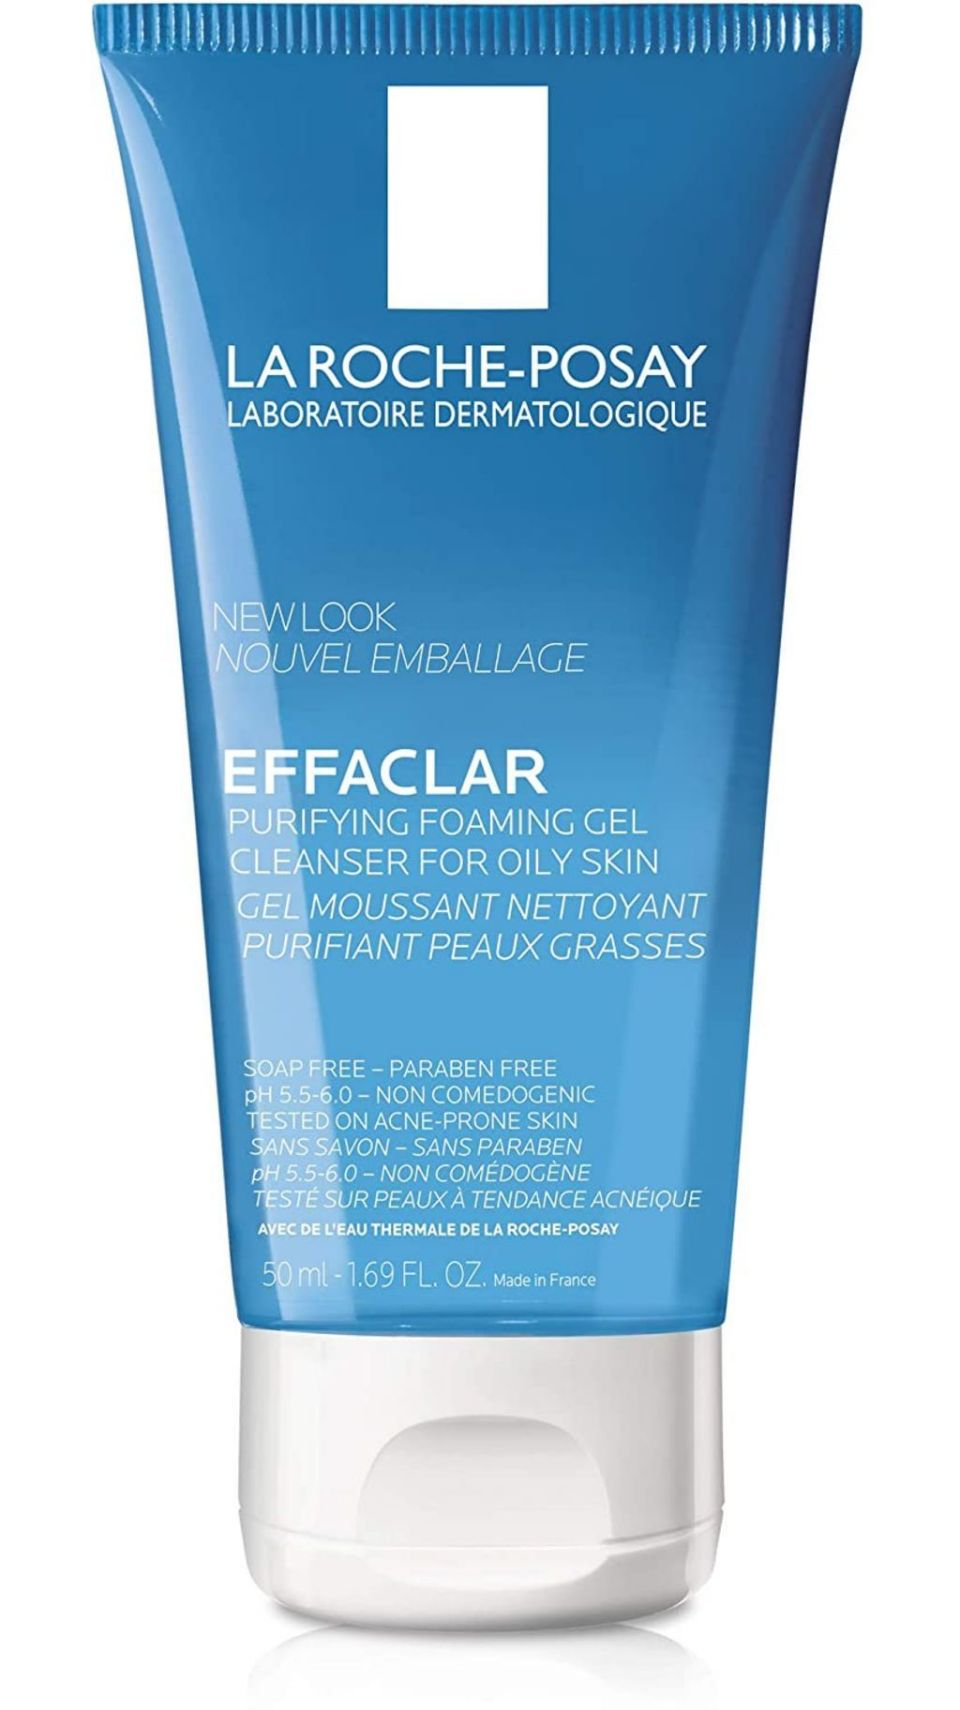 la roche posay, best skin care products for hormonal acne